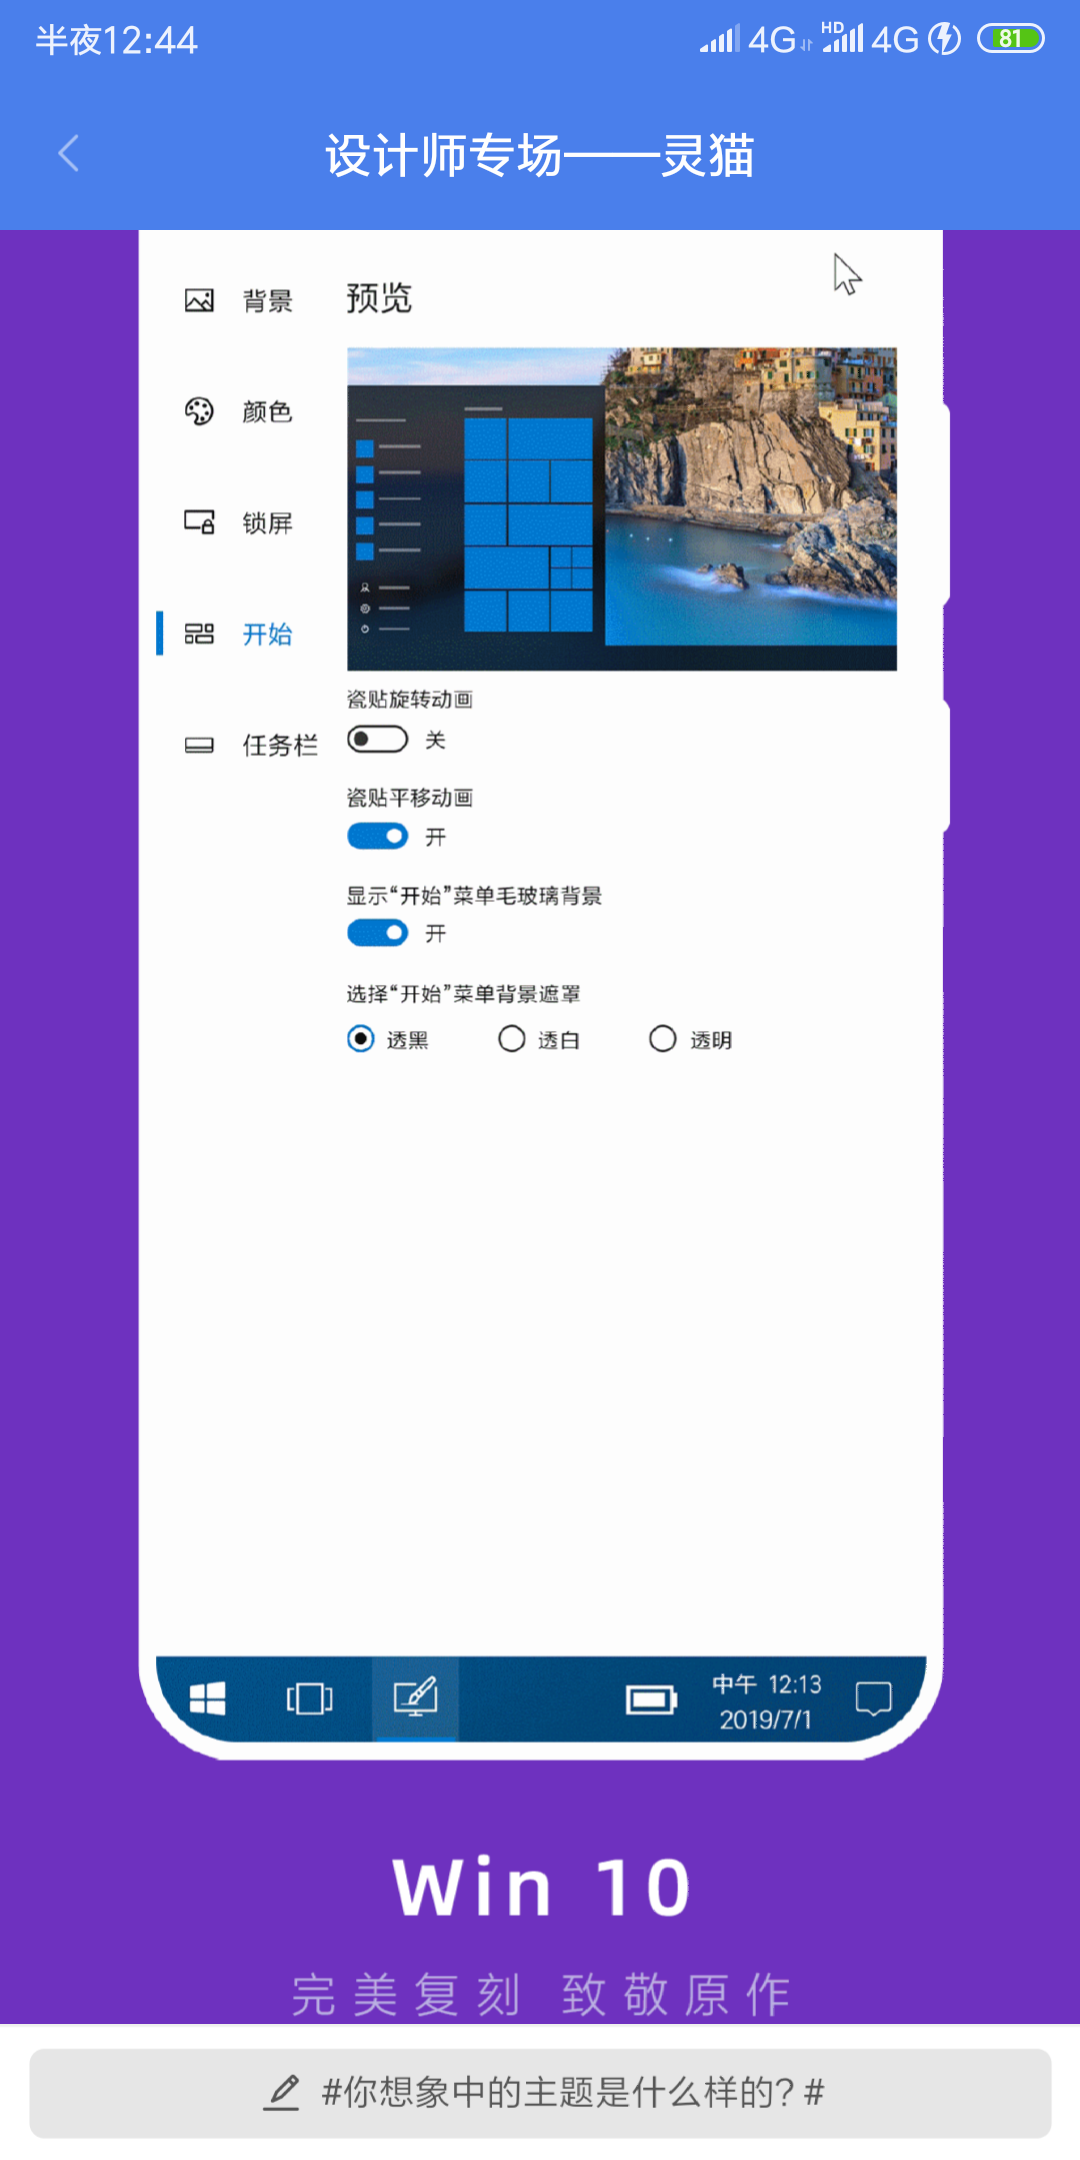 Screenshot_2019-07-22-00-44-58-431_com.android.thememanager.png